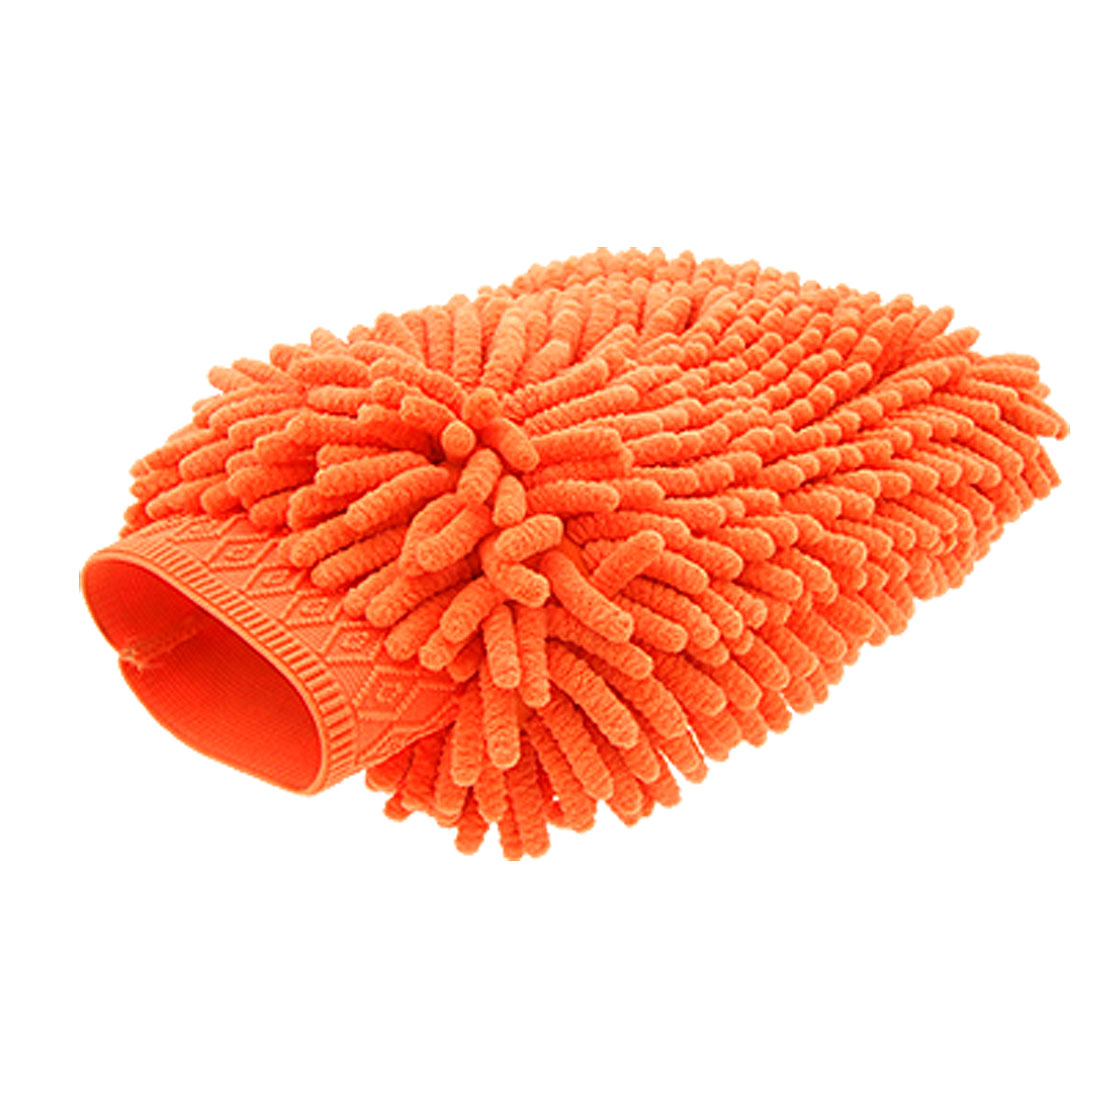 Microfiber Car Auto Washing Cleaning Glove Wash Mitt Water Absorptive Orange